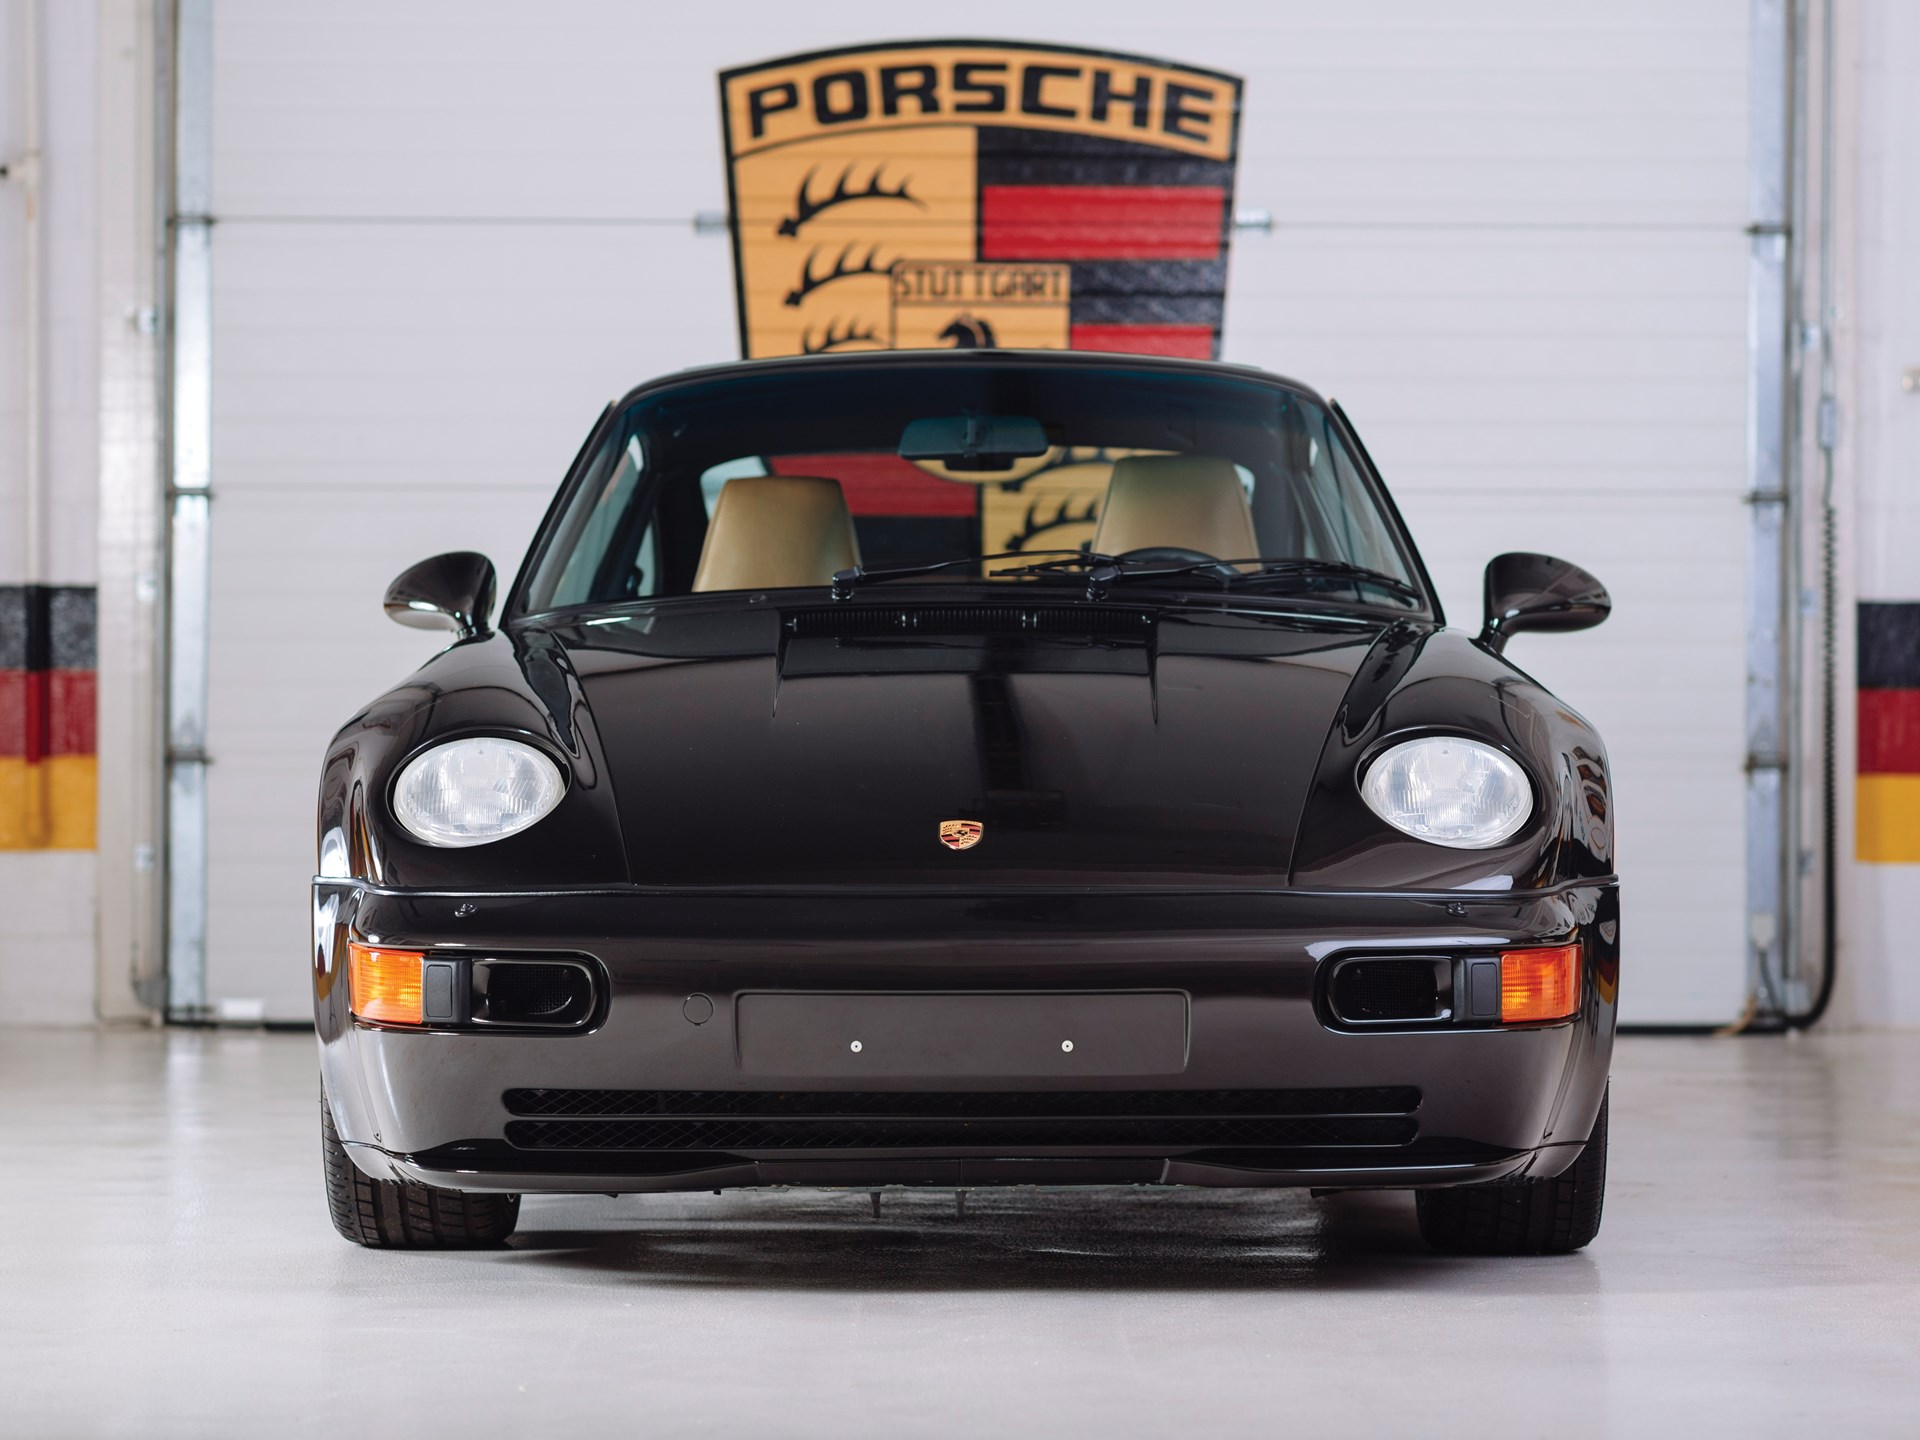 1994 Porsche 911 Turbo S X85 'Flat-Nose'